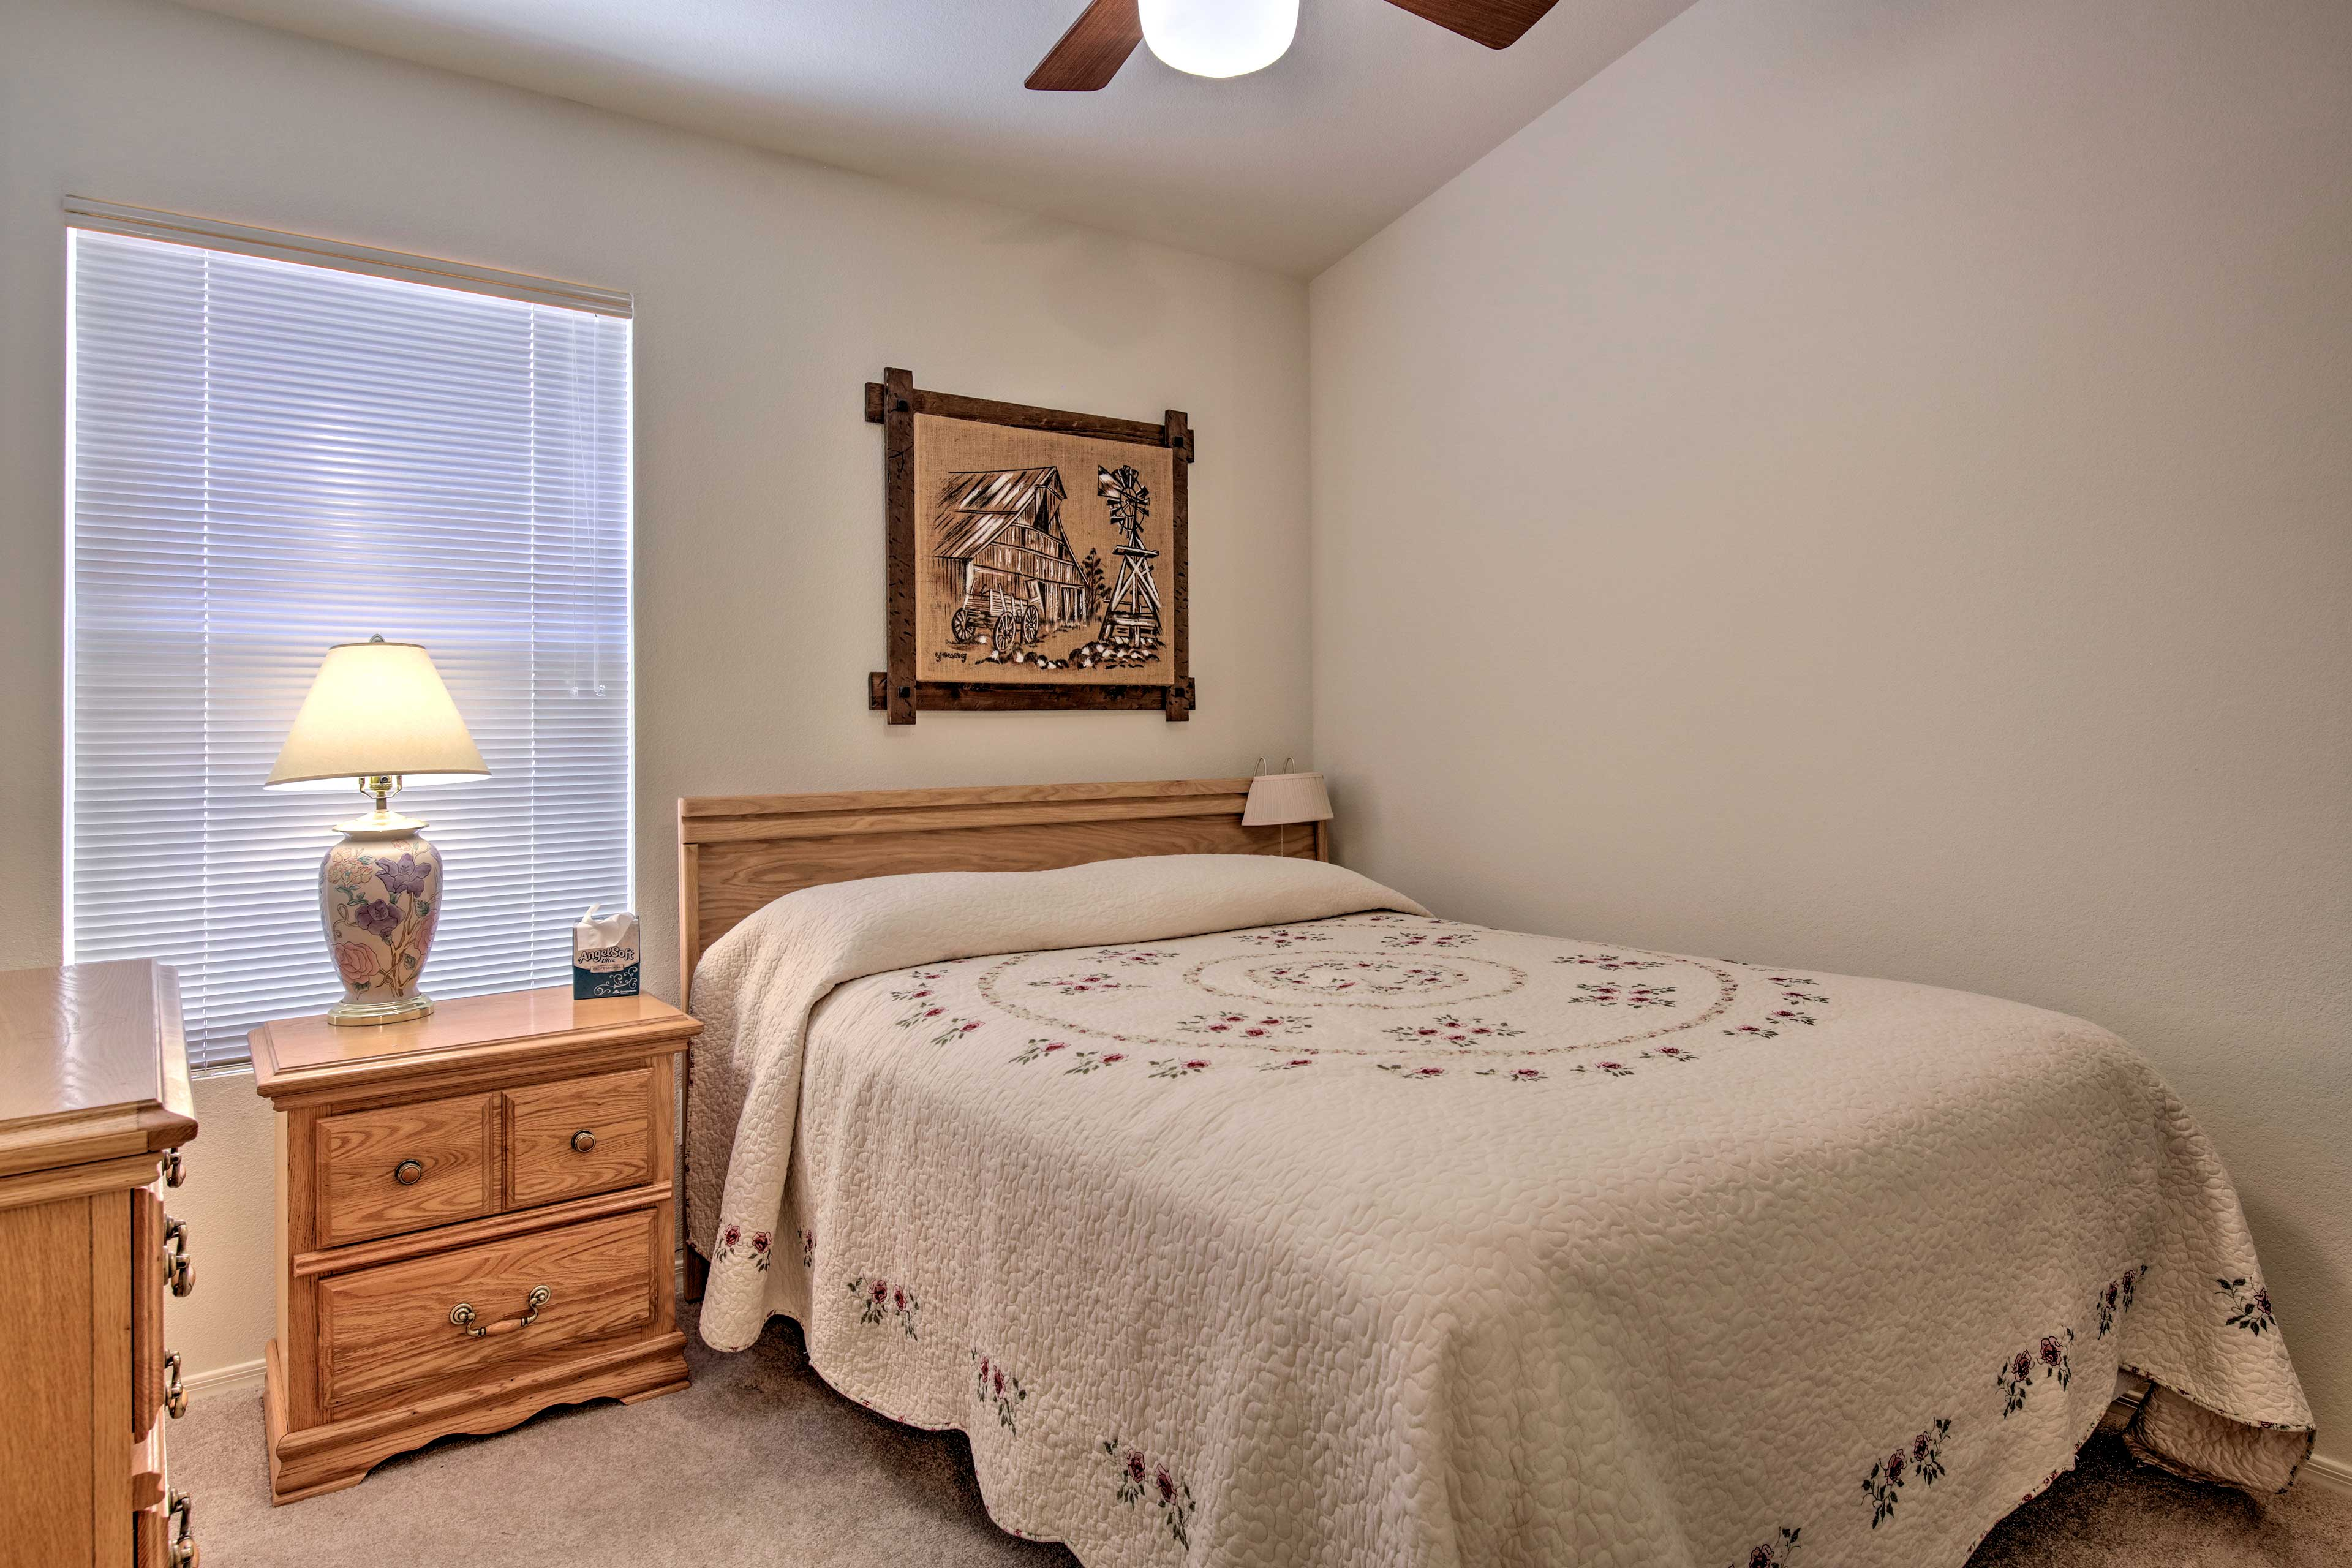 Bedroom 2 features a queen bed as well.